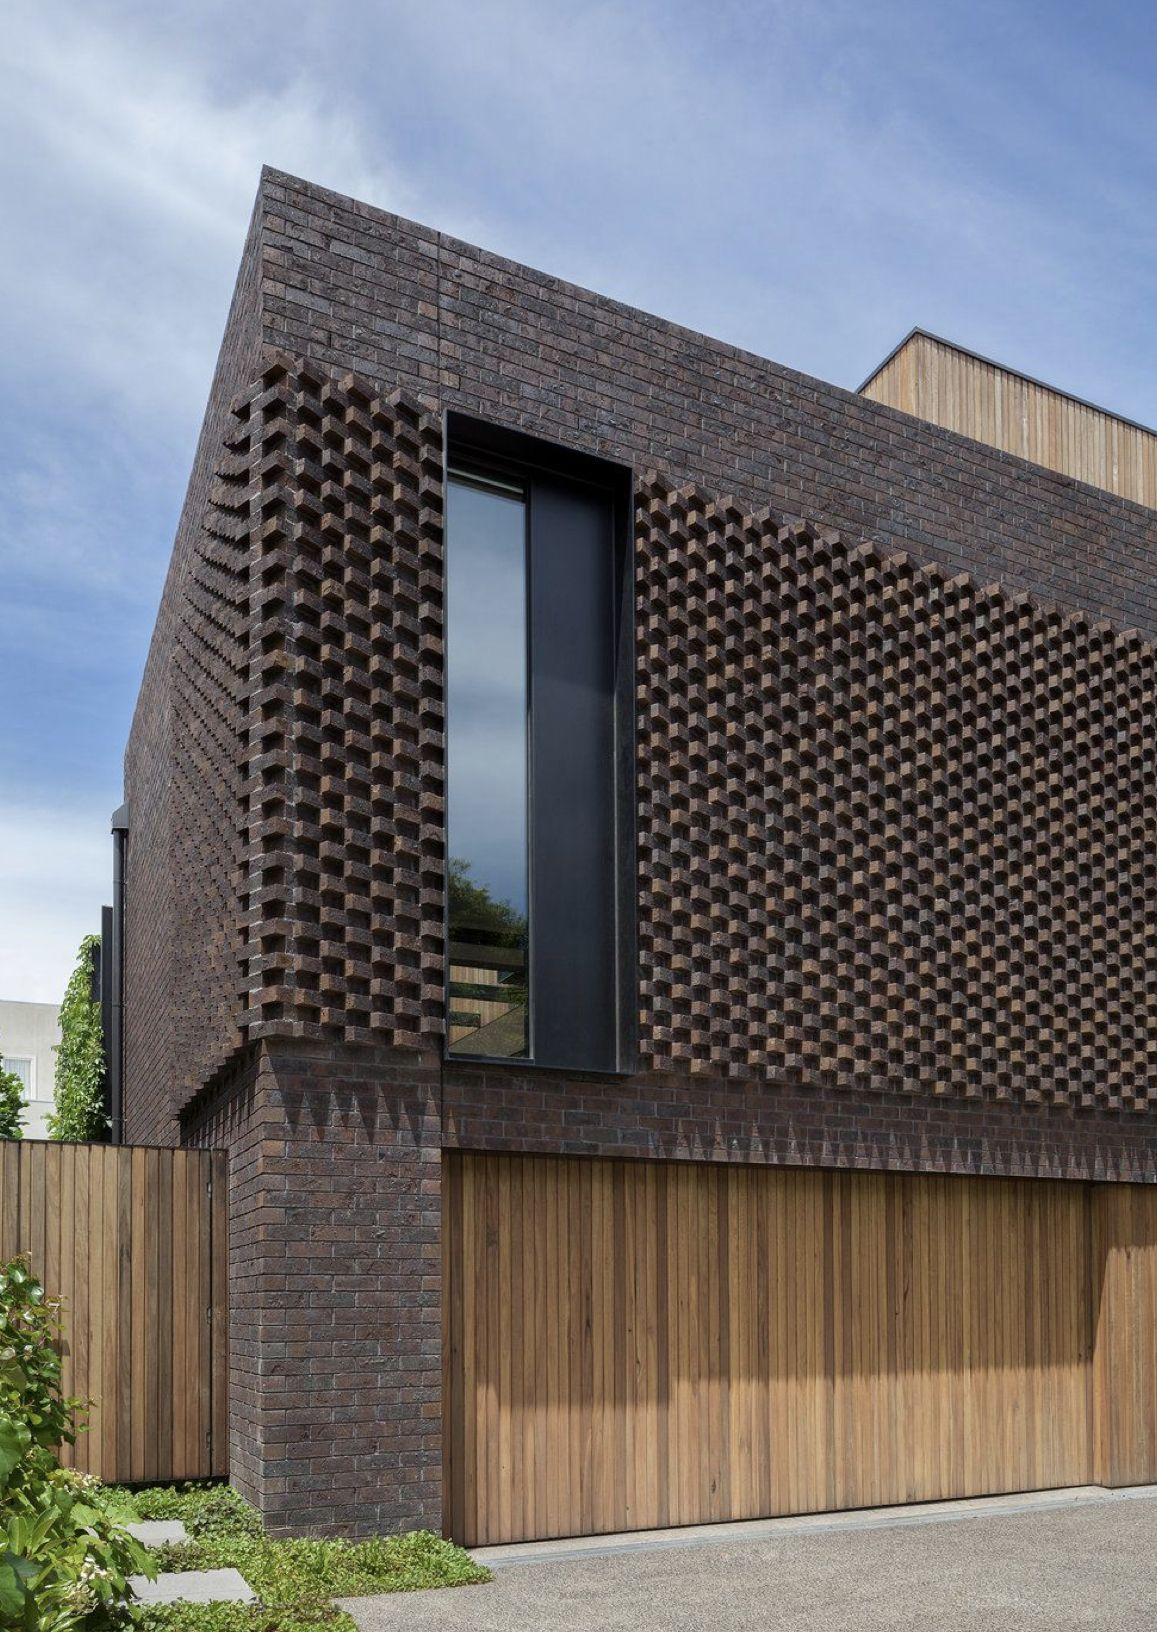 Pin By Tony On Wall Screen Facade Architecture Modern Brick House Brick Architecture